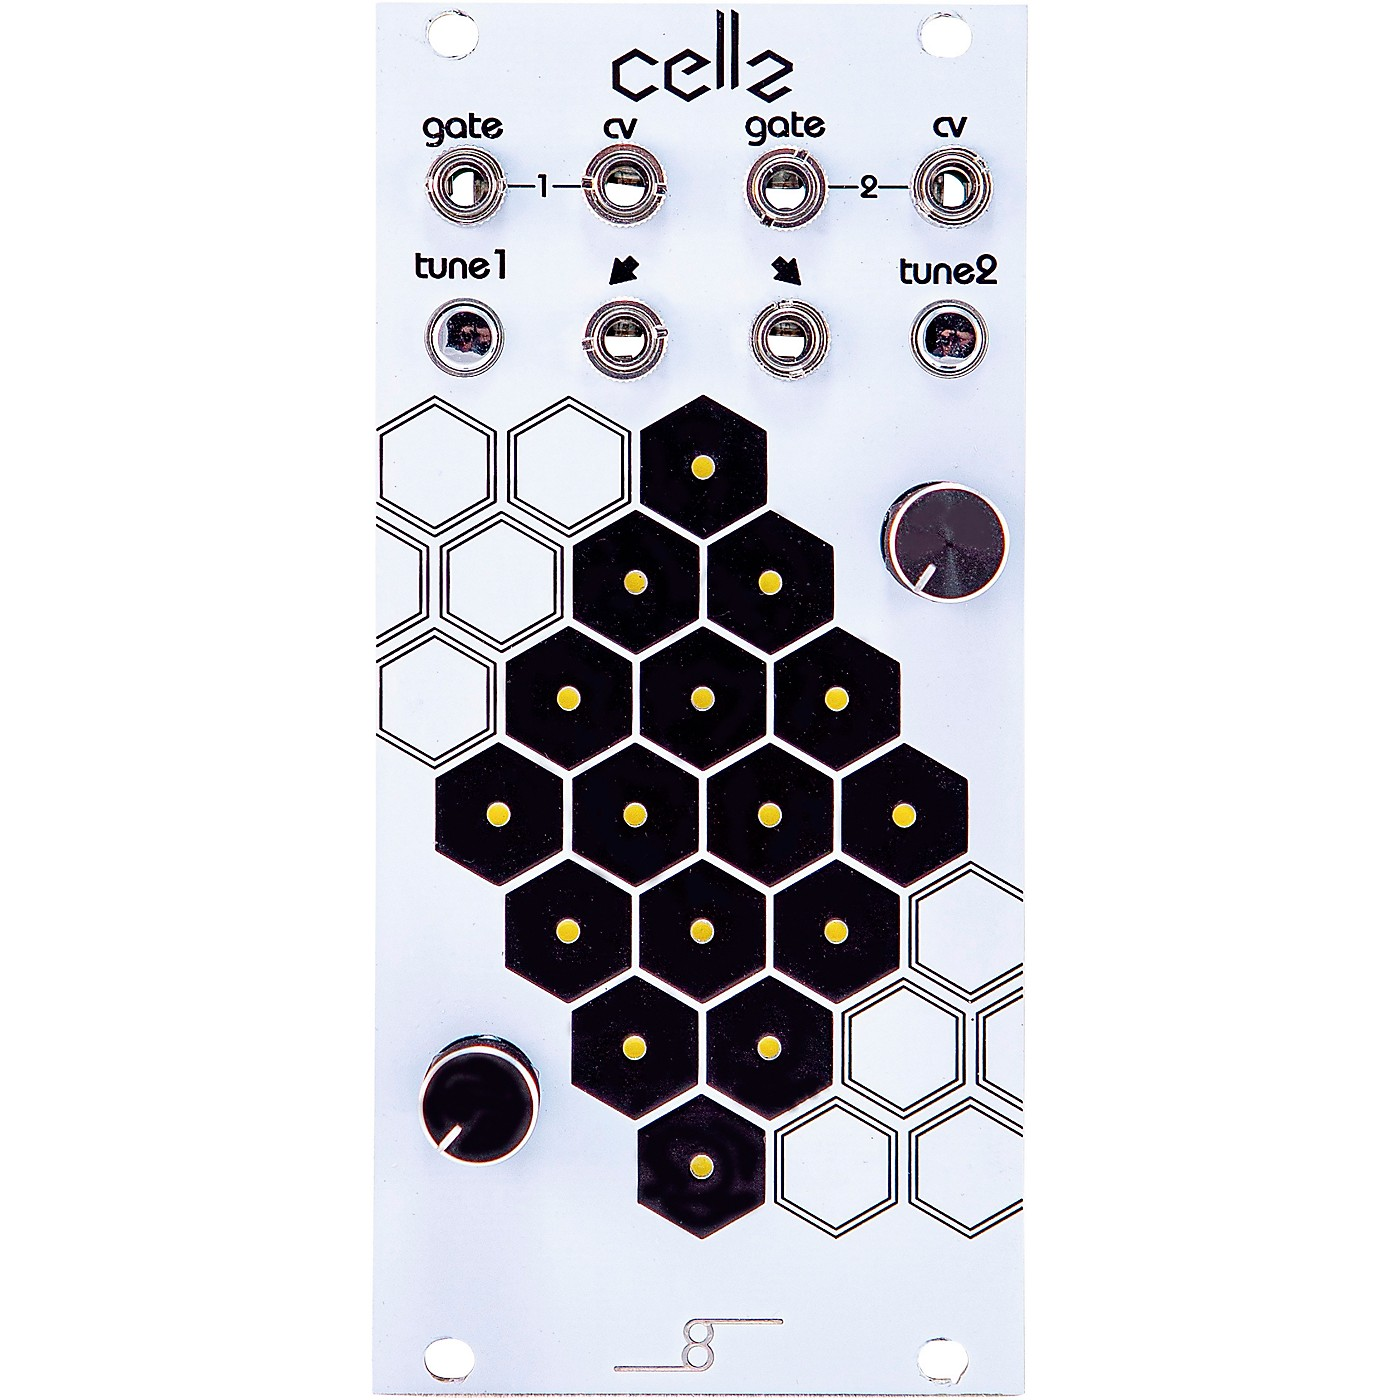 Cre8audio Cellz CV Touch Control and Sequencer thumbnail